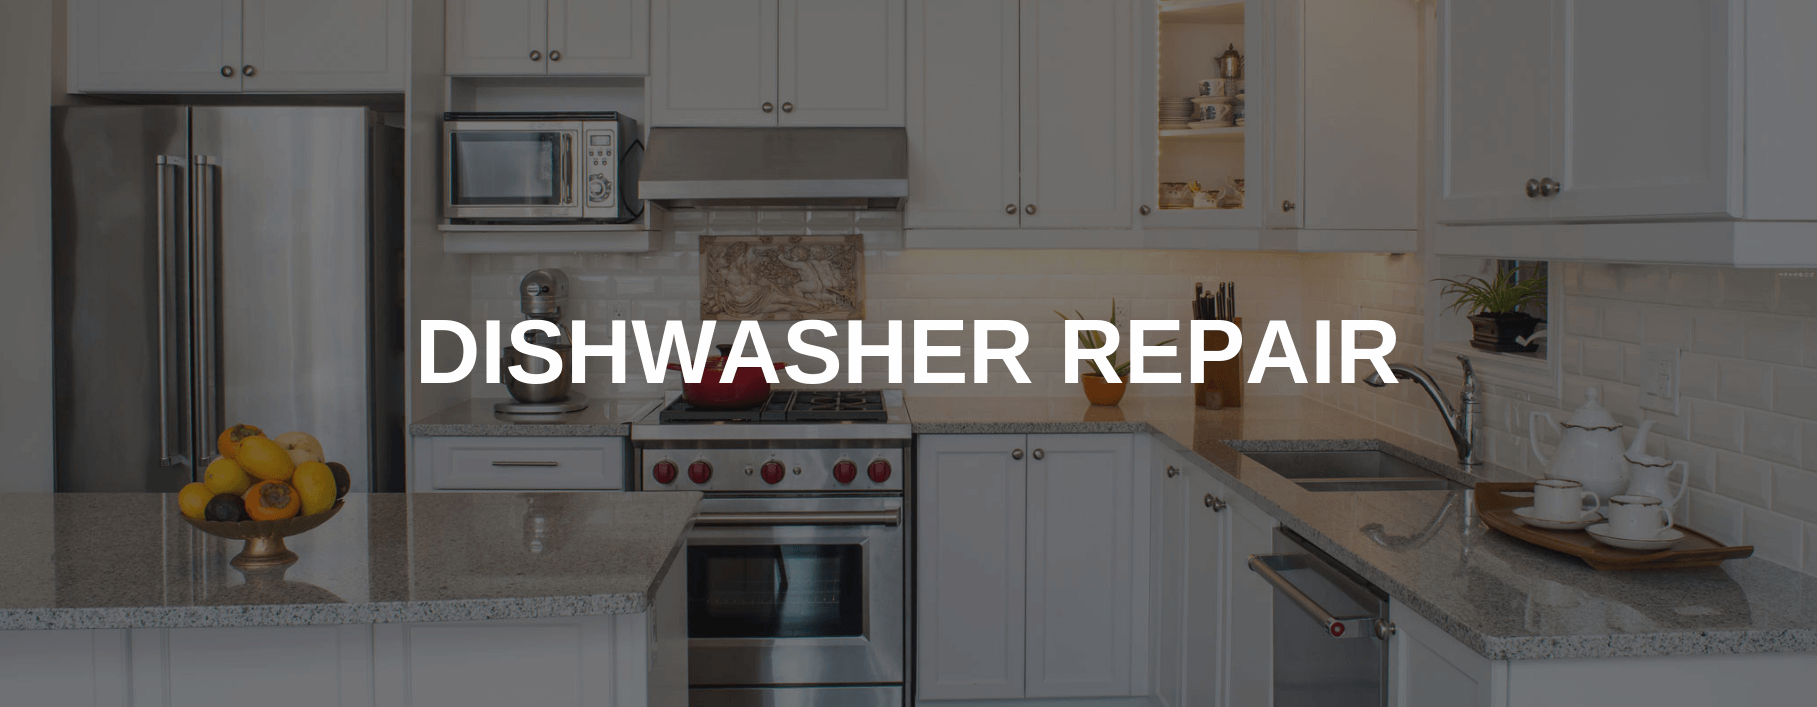 dishwasher repair vernon